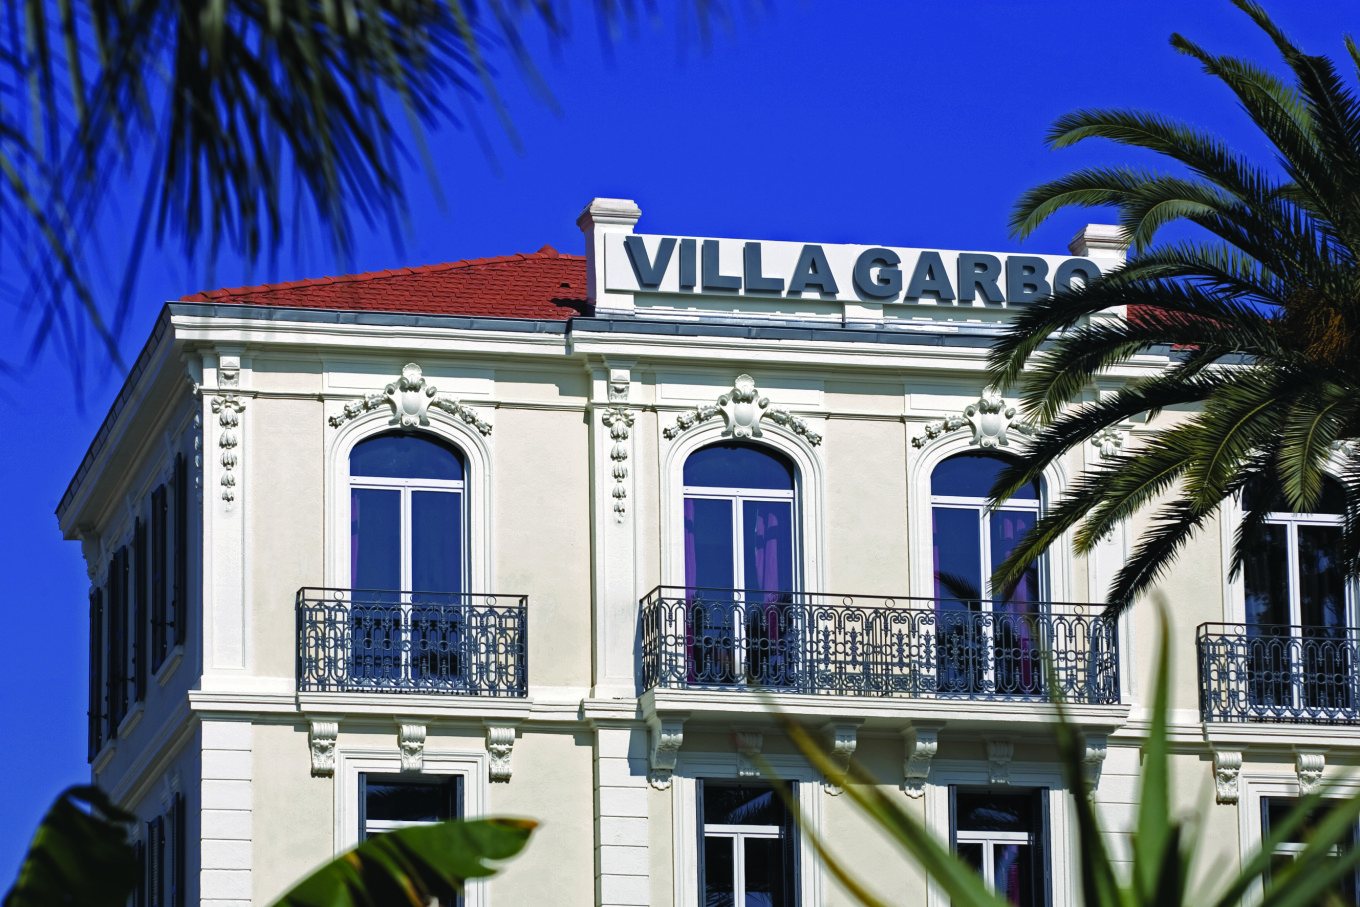 Facade de la Villa Garbo, Cannes, France